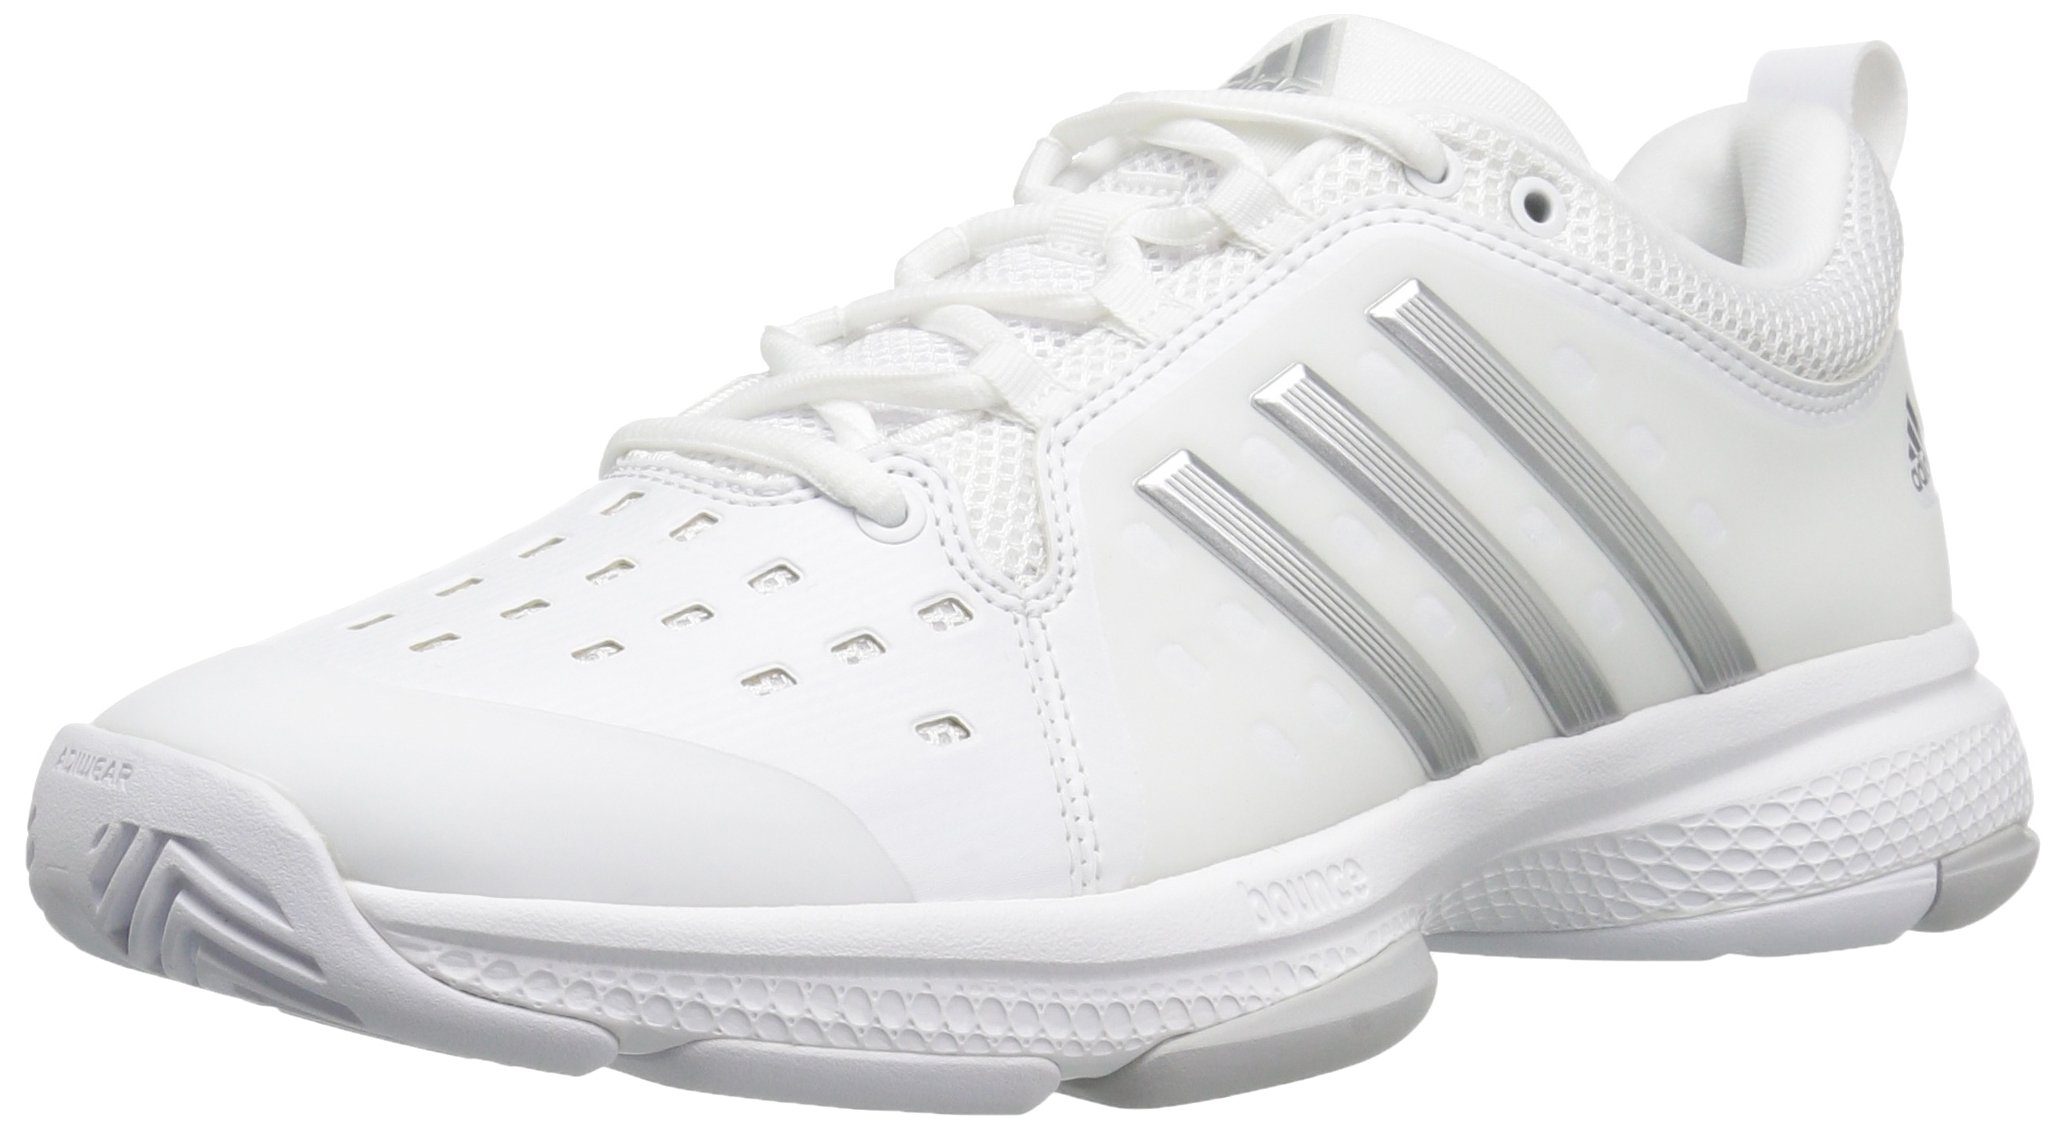 quality design a84f1 0532b adidas Performance Womens Barricade Classic Bounce Tennis Shoes,  WhiteMetallic SilverLight Solid